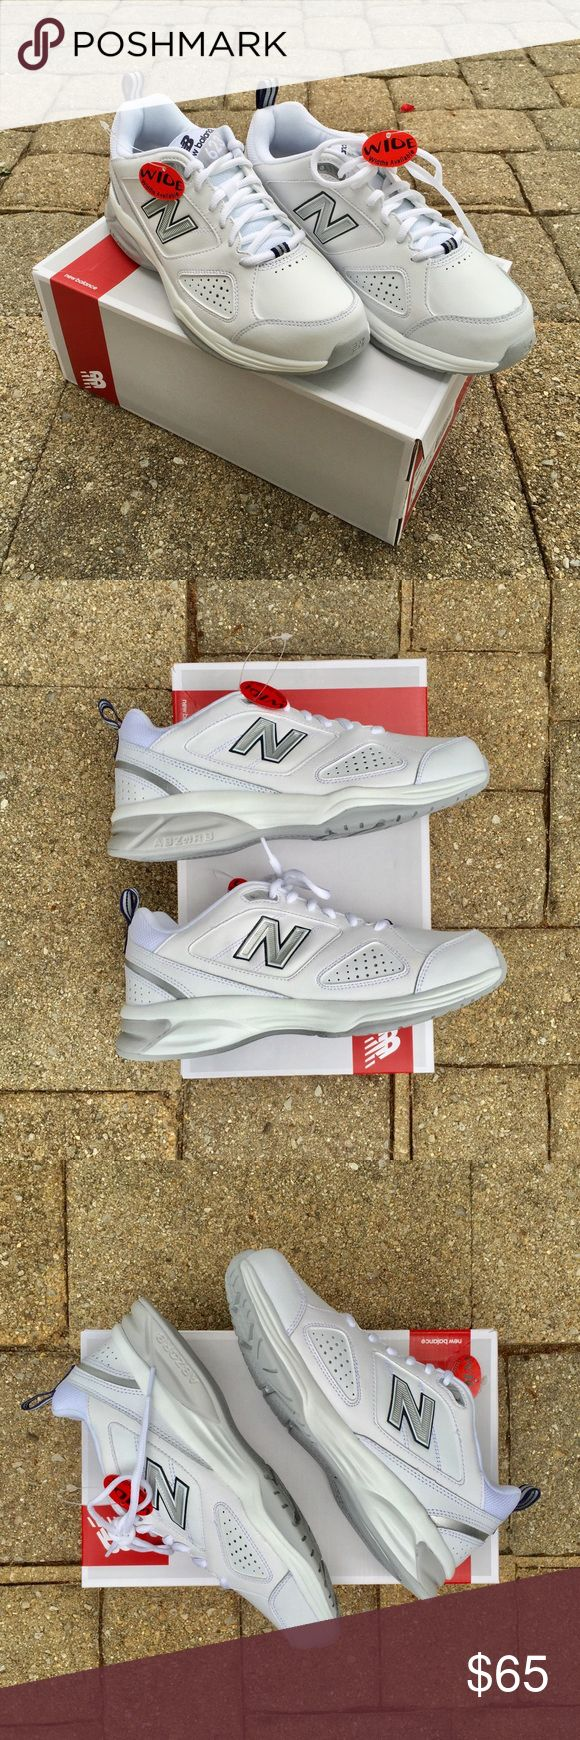 💖BNIB NEW BALANCE Women's Sz 9 [Wide] 623v3 Shoes BRAND NEW IN BOX NEW Balance Women's 623v3 Training Shoes- Size 9 Wide-Please ask questions if needed...I am a Suggested User with 5 Star Rating... 💕Purchased for my mom and she had hip surgery and cannot wear them...  🔸Due to privacy, I do not send a comment after your purchase 🔸If you need confirmation of purchase, please comment under your listing and I will reply...  🛍THANKS 〰Deb New Balance Shoes Athletic Shoes